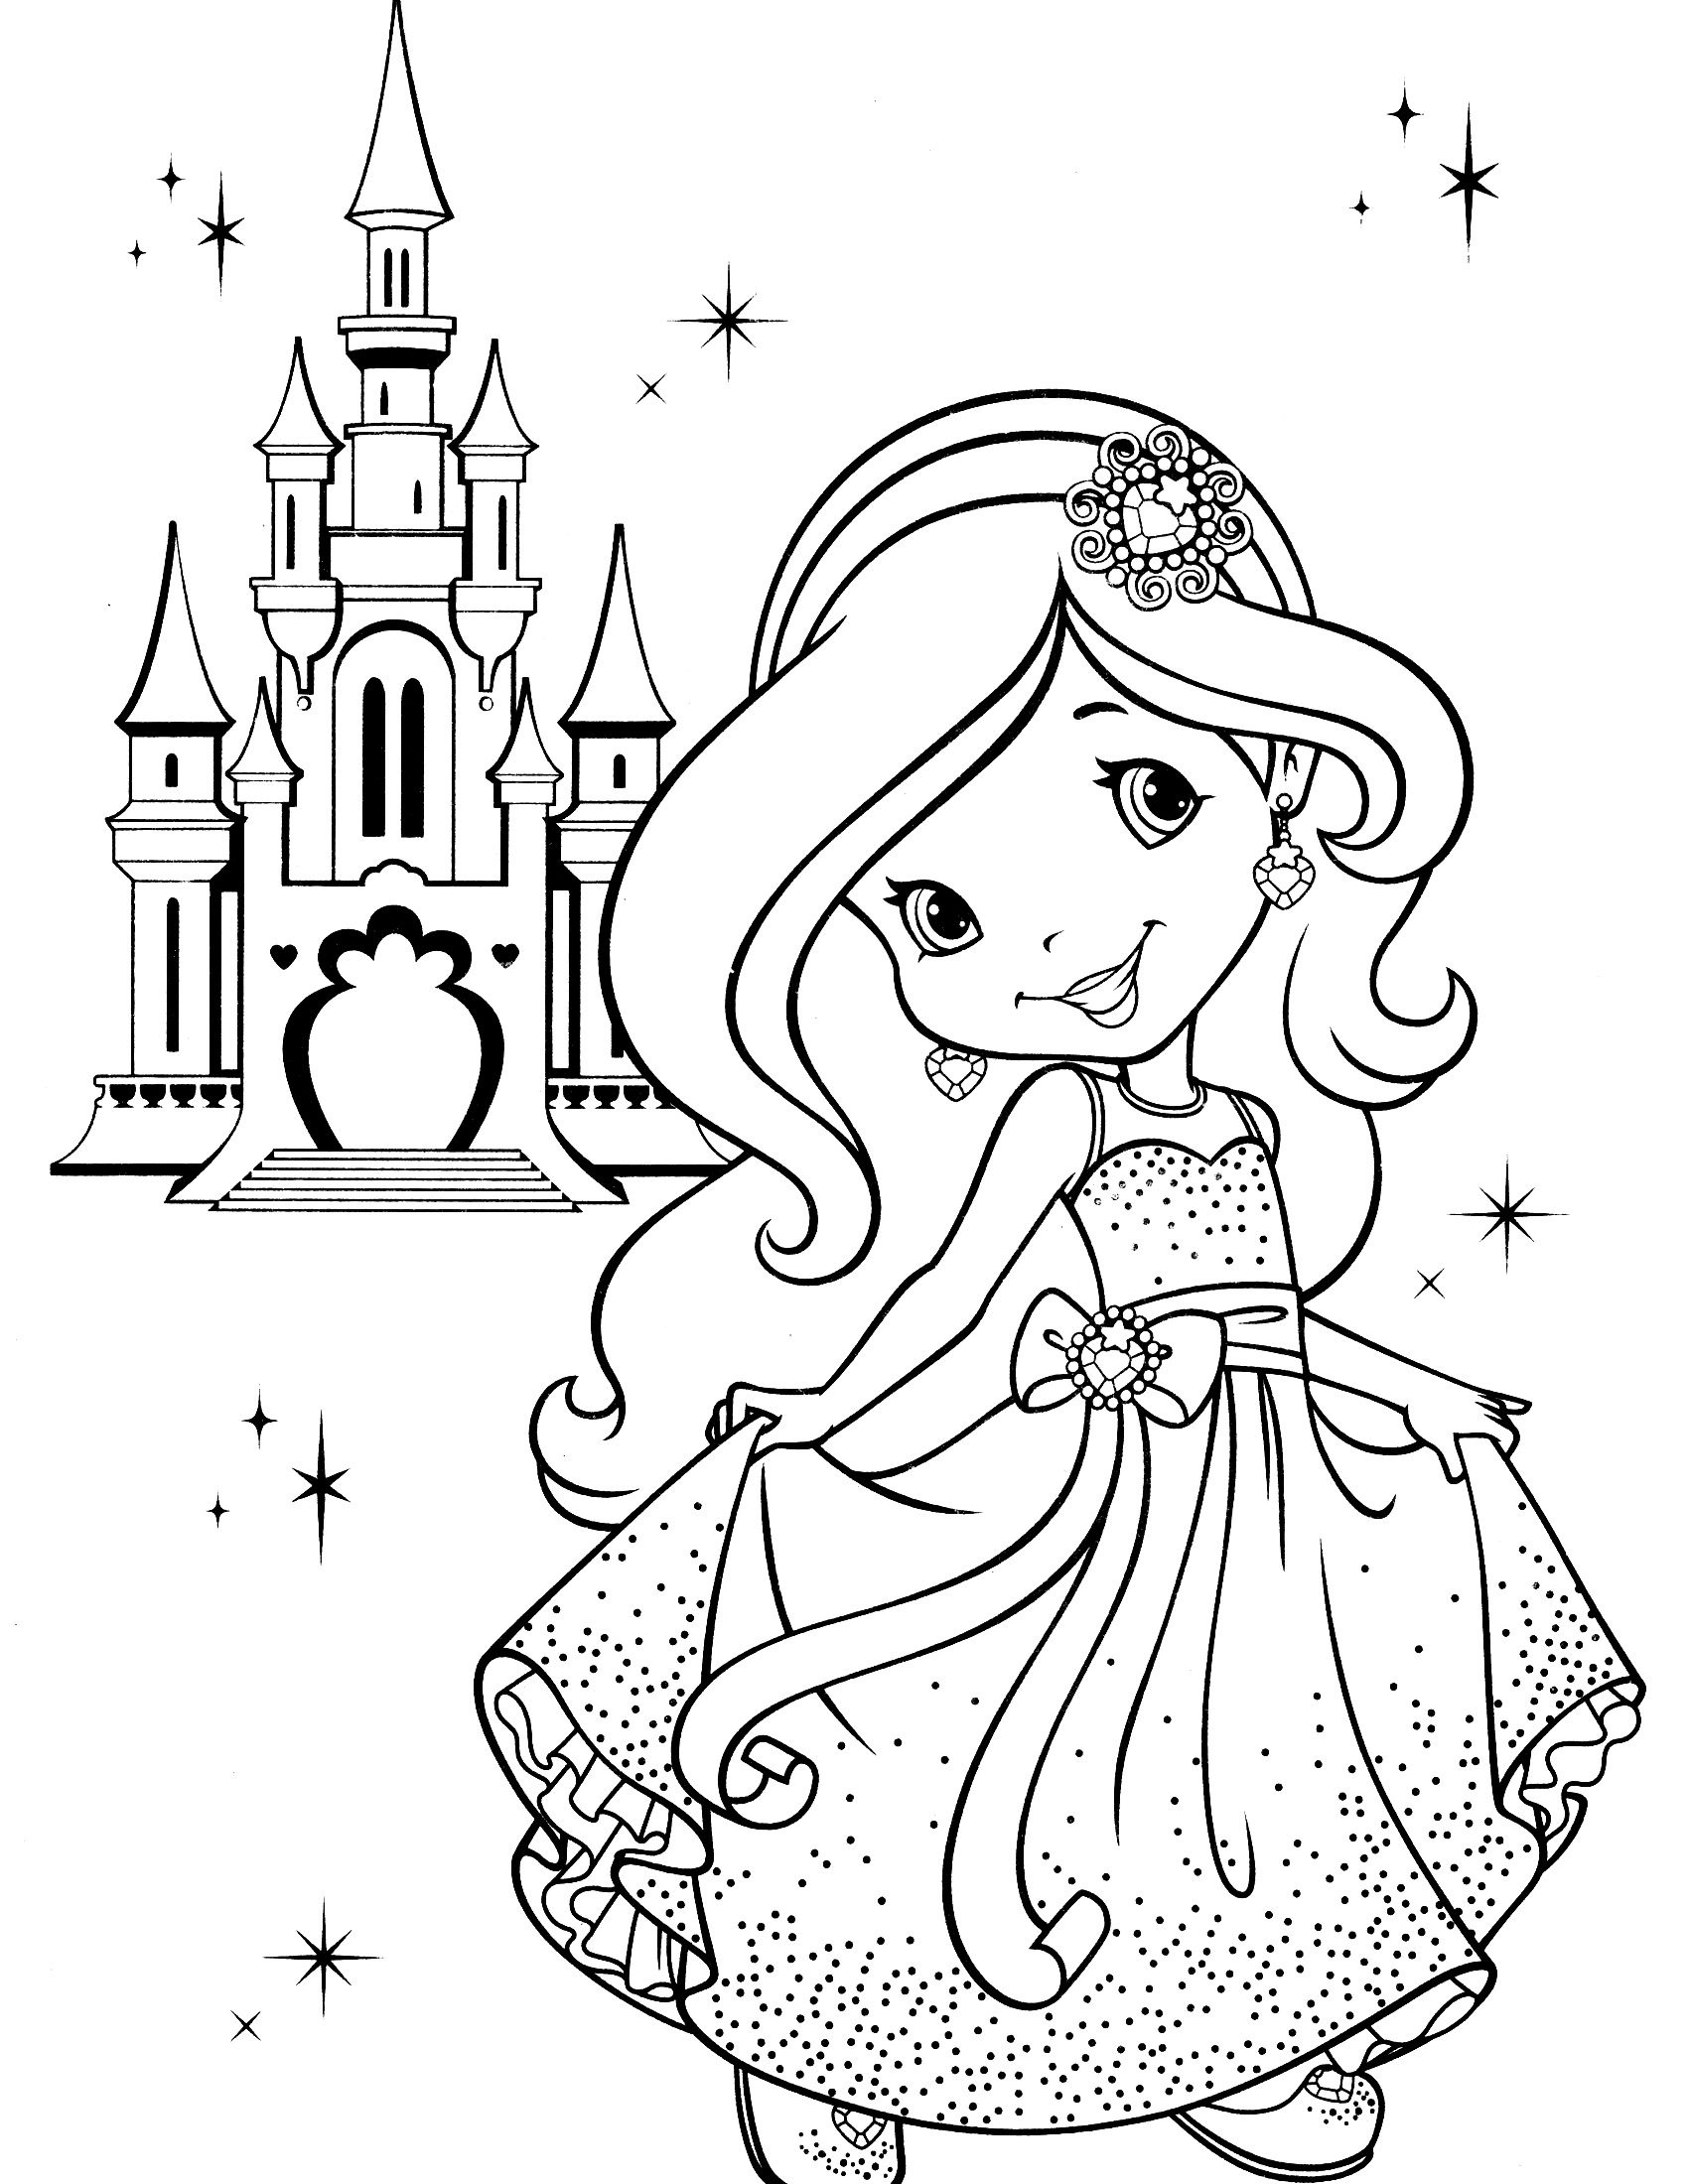 Strawberry Shortcake Coloring Page | Kids | Princess Coloring Pages - Strawberry Shortcake Coloring Pages Free Printable